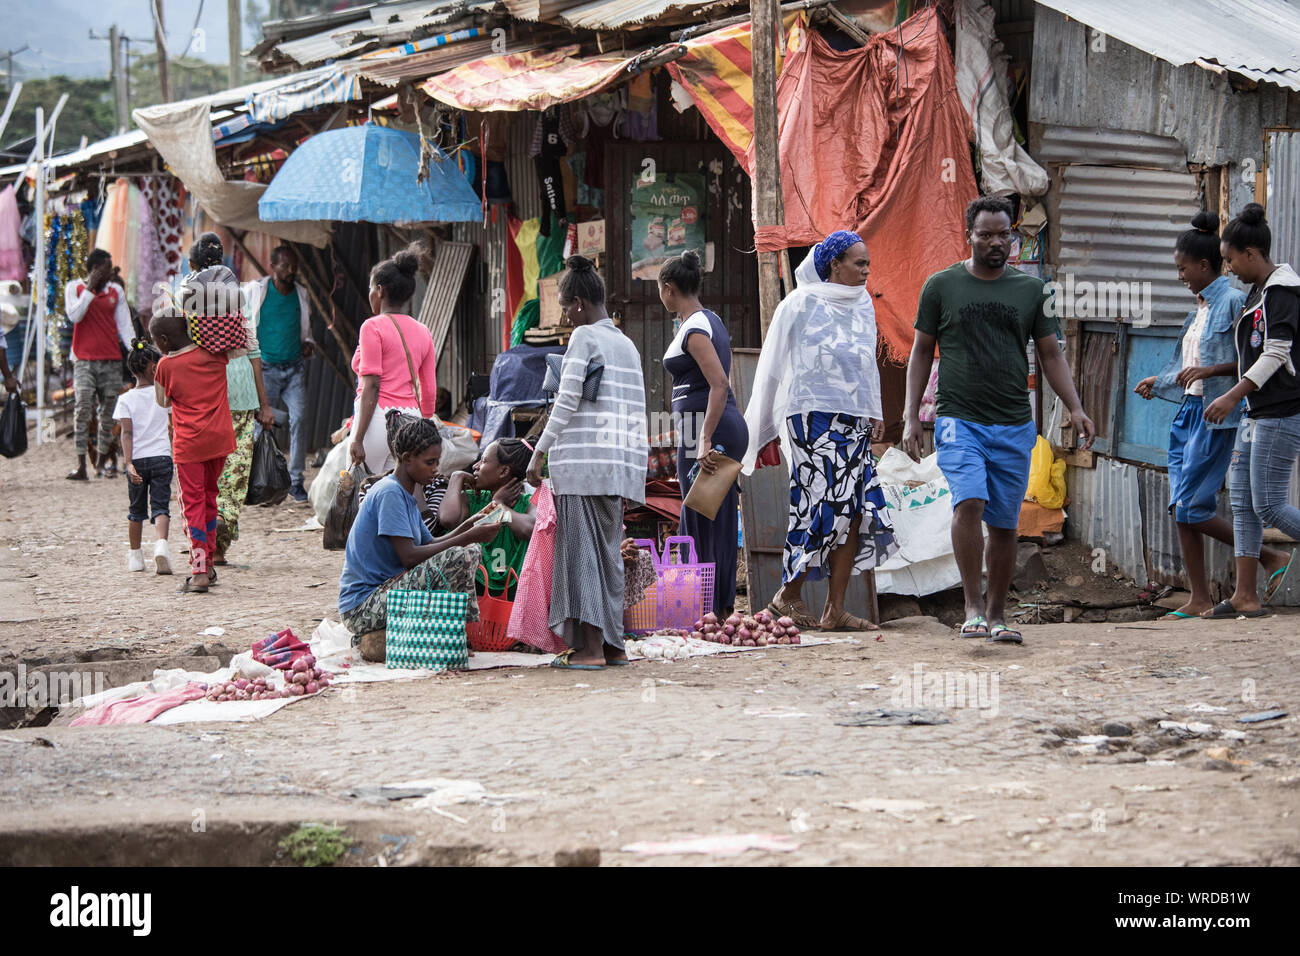 ARBA MINCH, ETHIOPIA-OCTOBER 27, 2018: Unidentified merchants sell vegetables and other wares at a market in Arba Minch, Ethiopia. Stock Photo